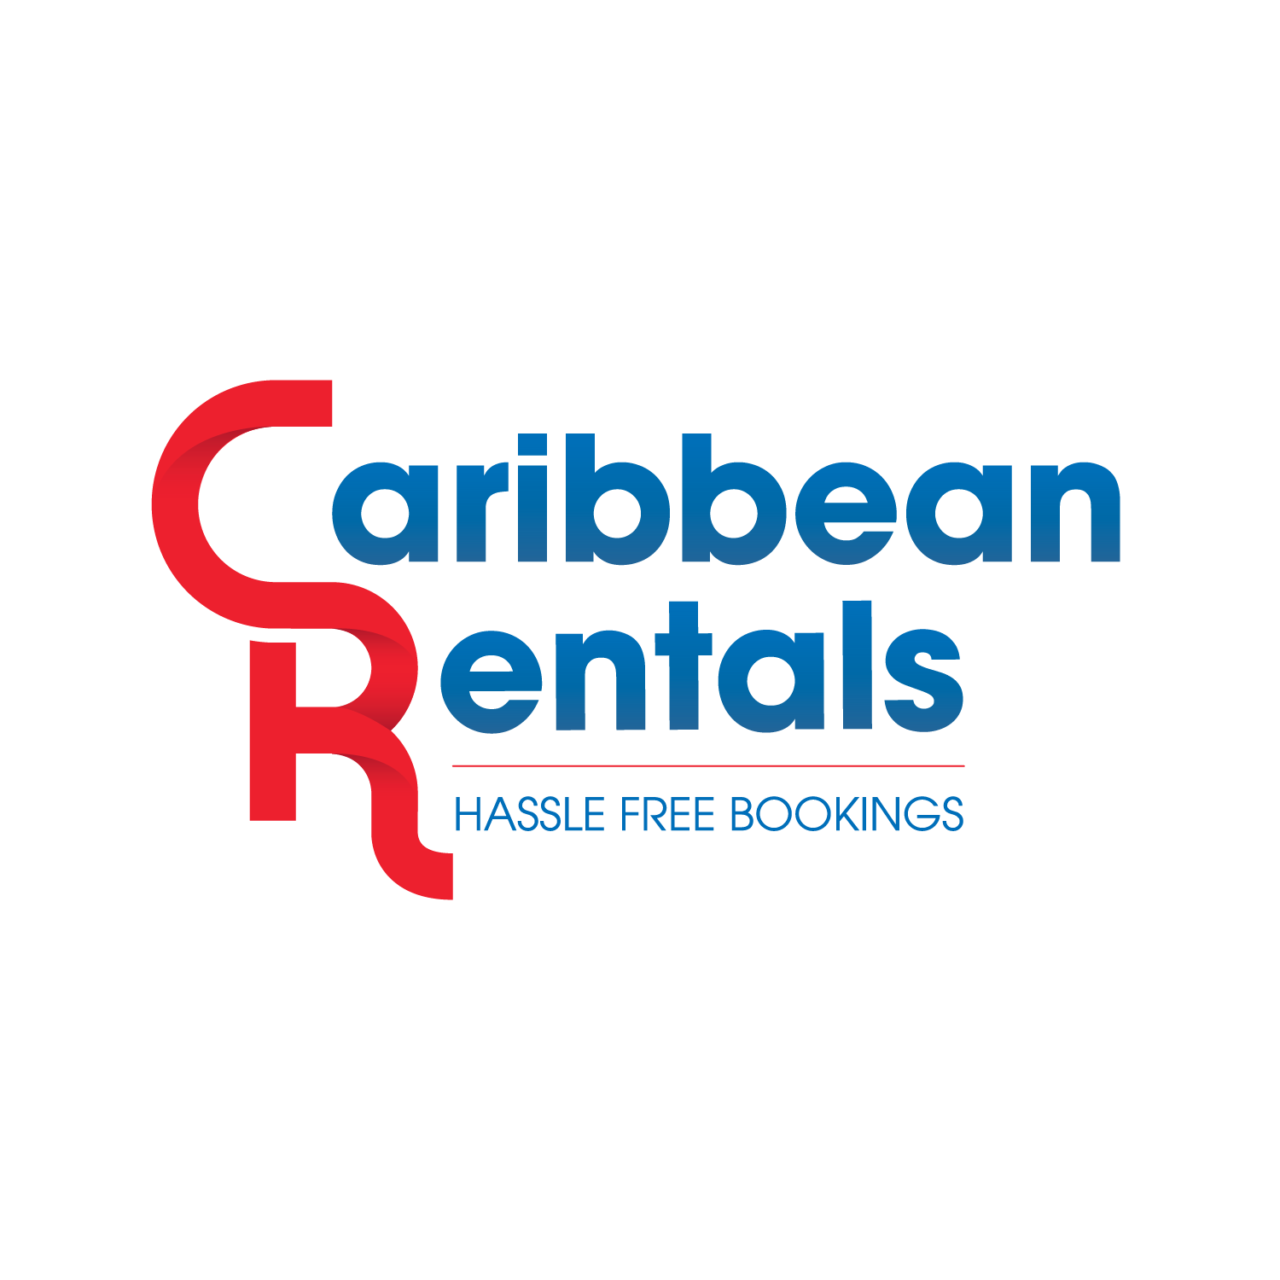 https://www.everydayvoip.com/wp-content/uploads/sites/3/2020/05/caribbean-1280x1280.png